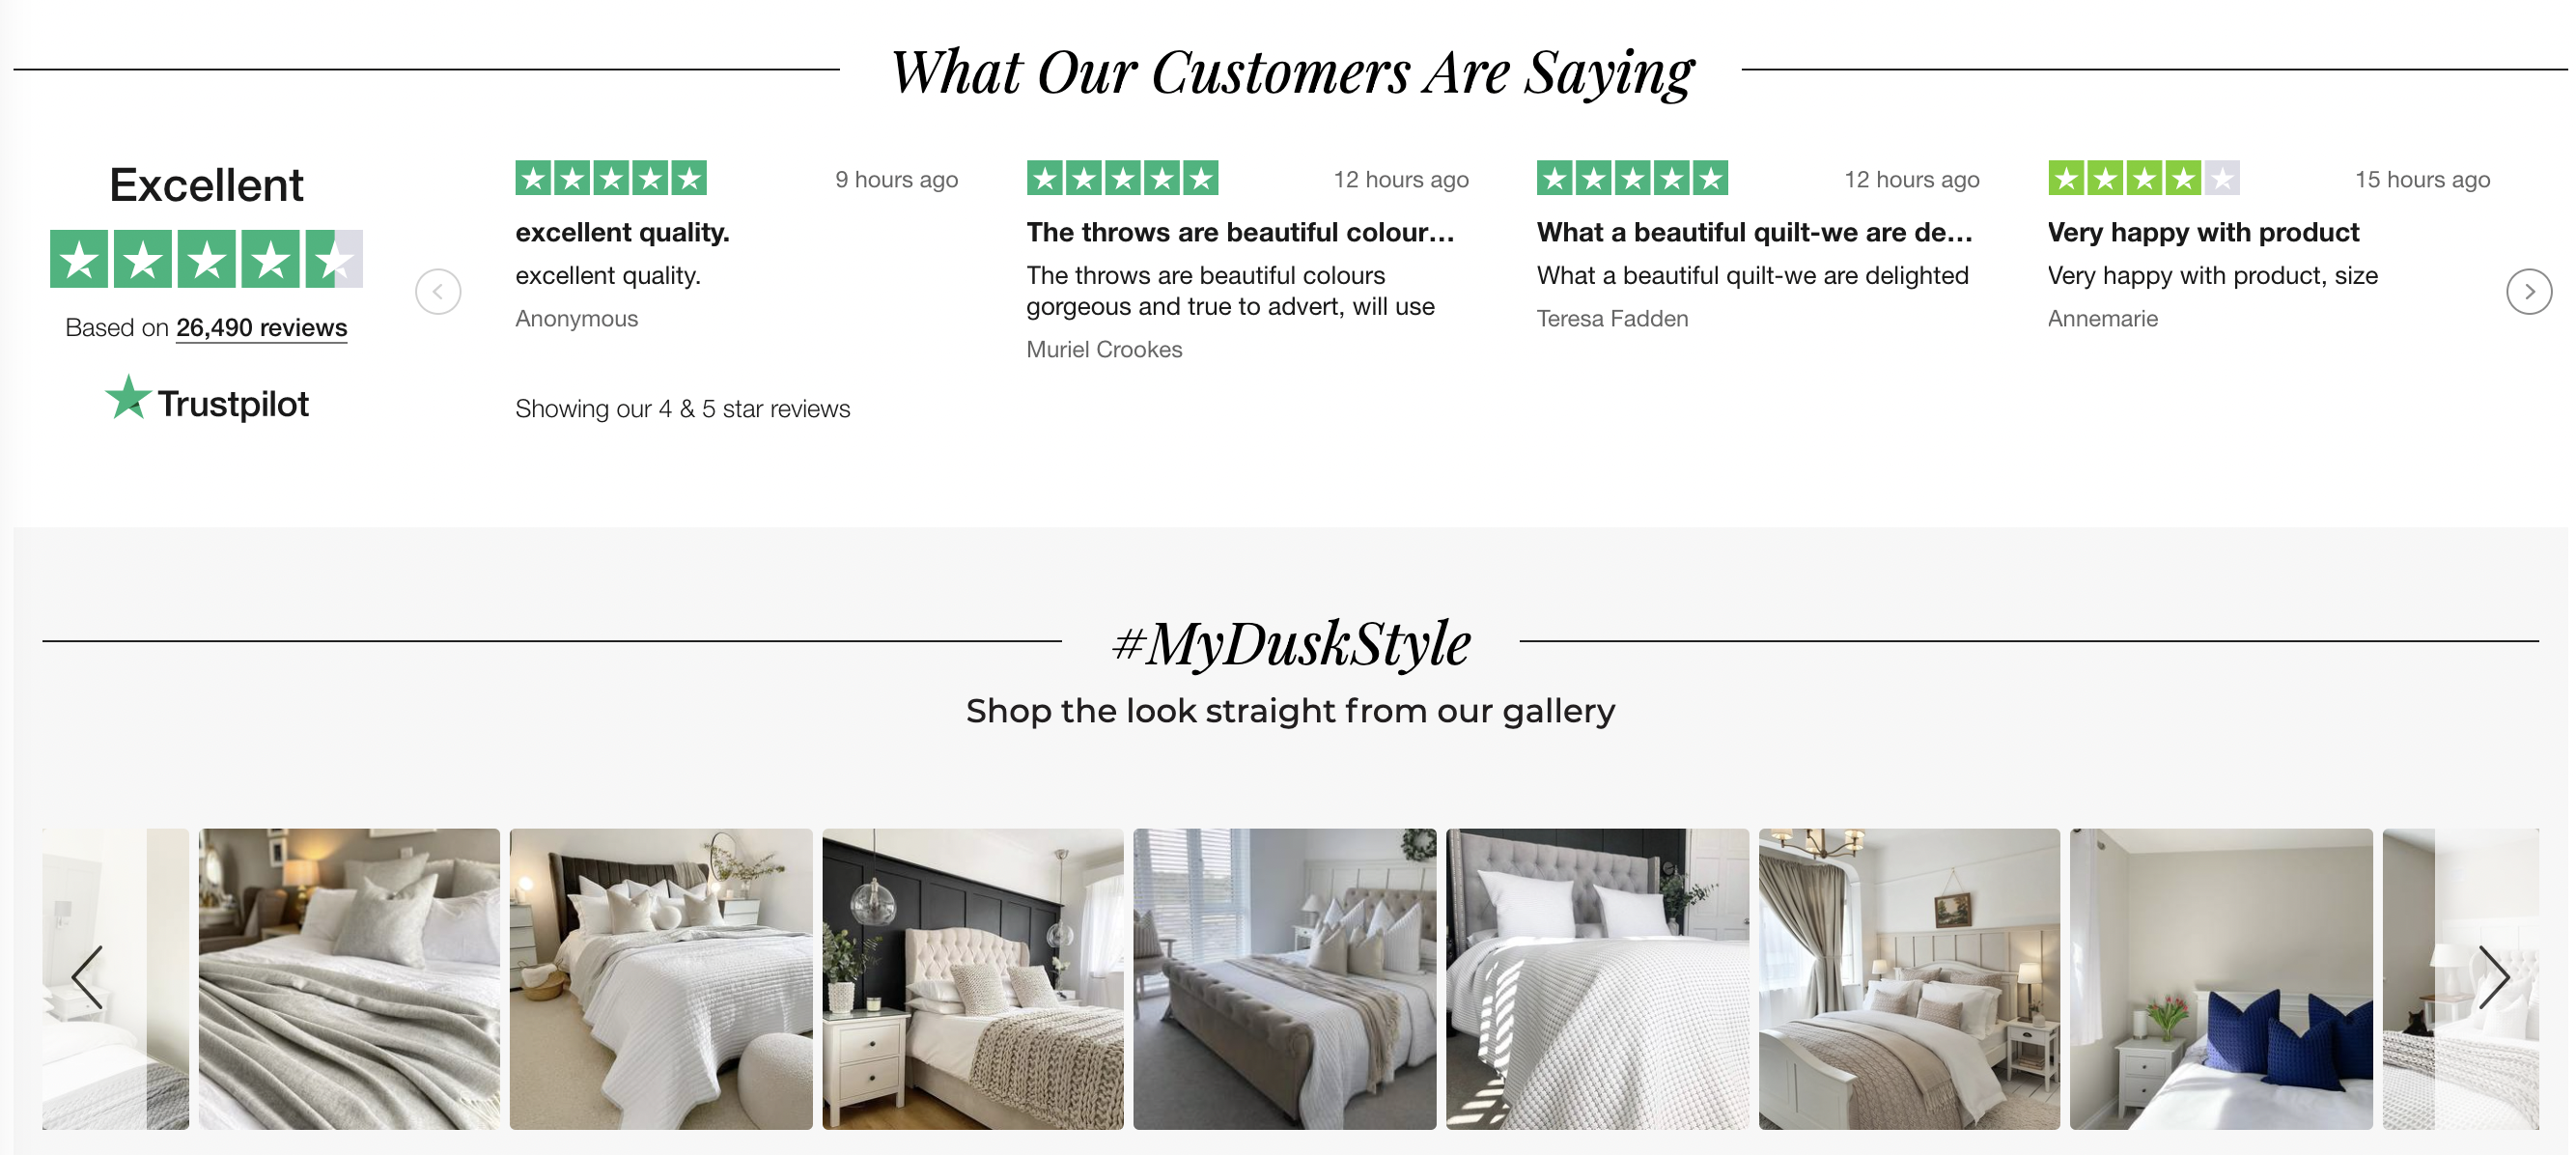 Dusk showcase reviews and user-generated content on their homepage